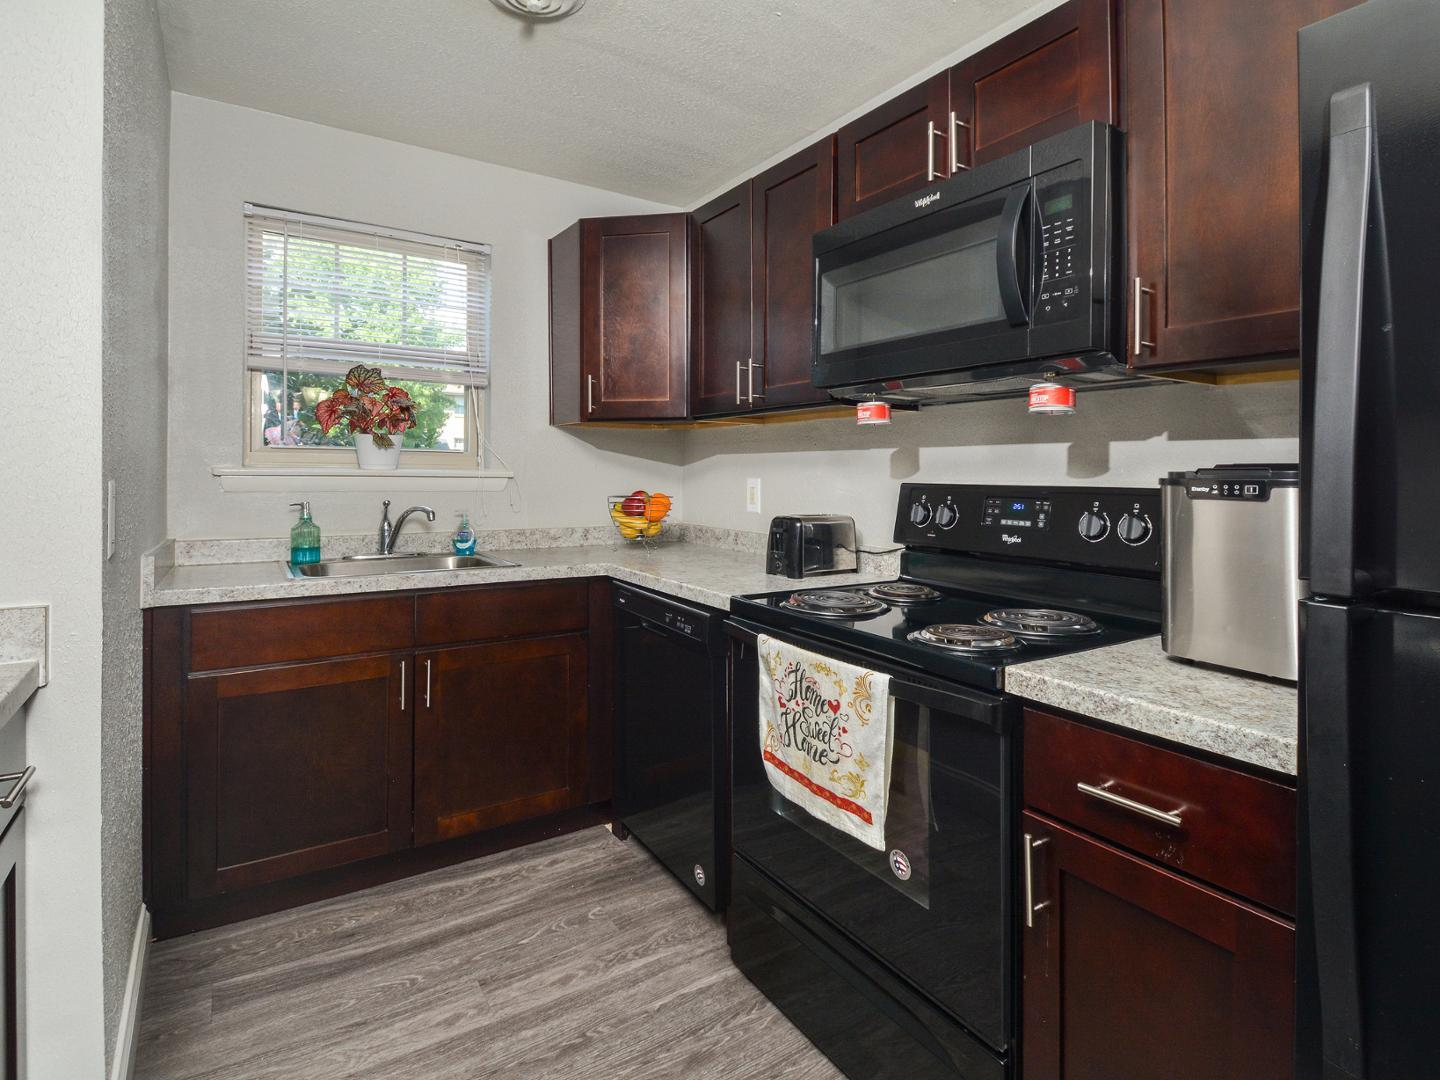 41 Fairway Rd 2c #25-1D, Newark, DE - $811 USD/ month